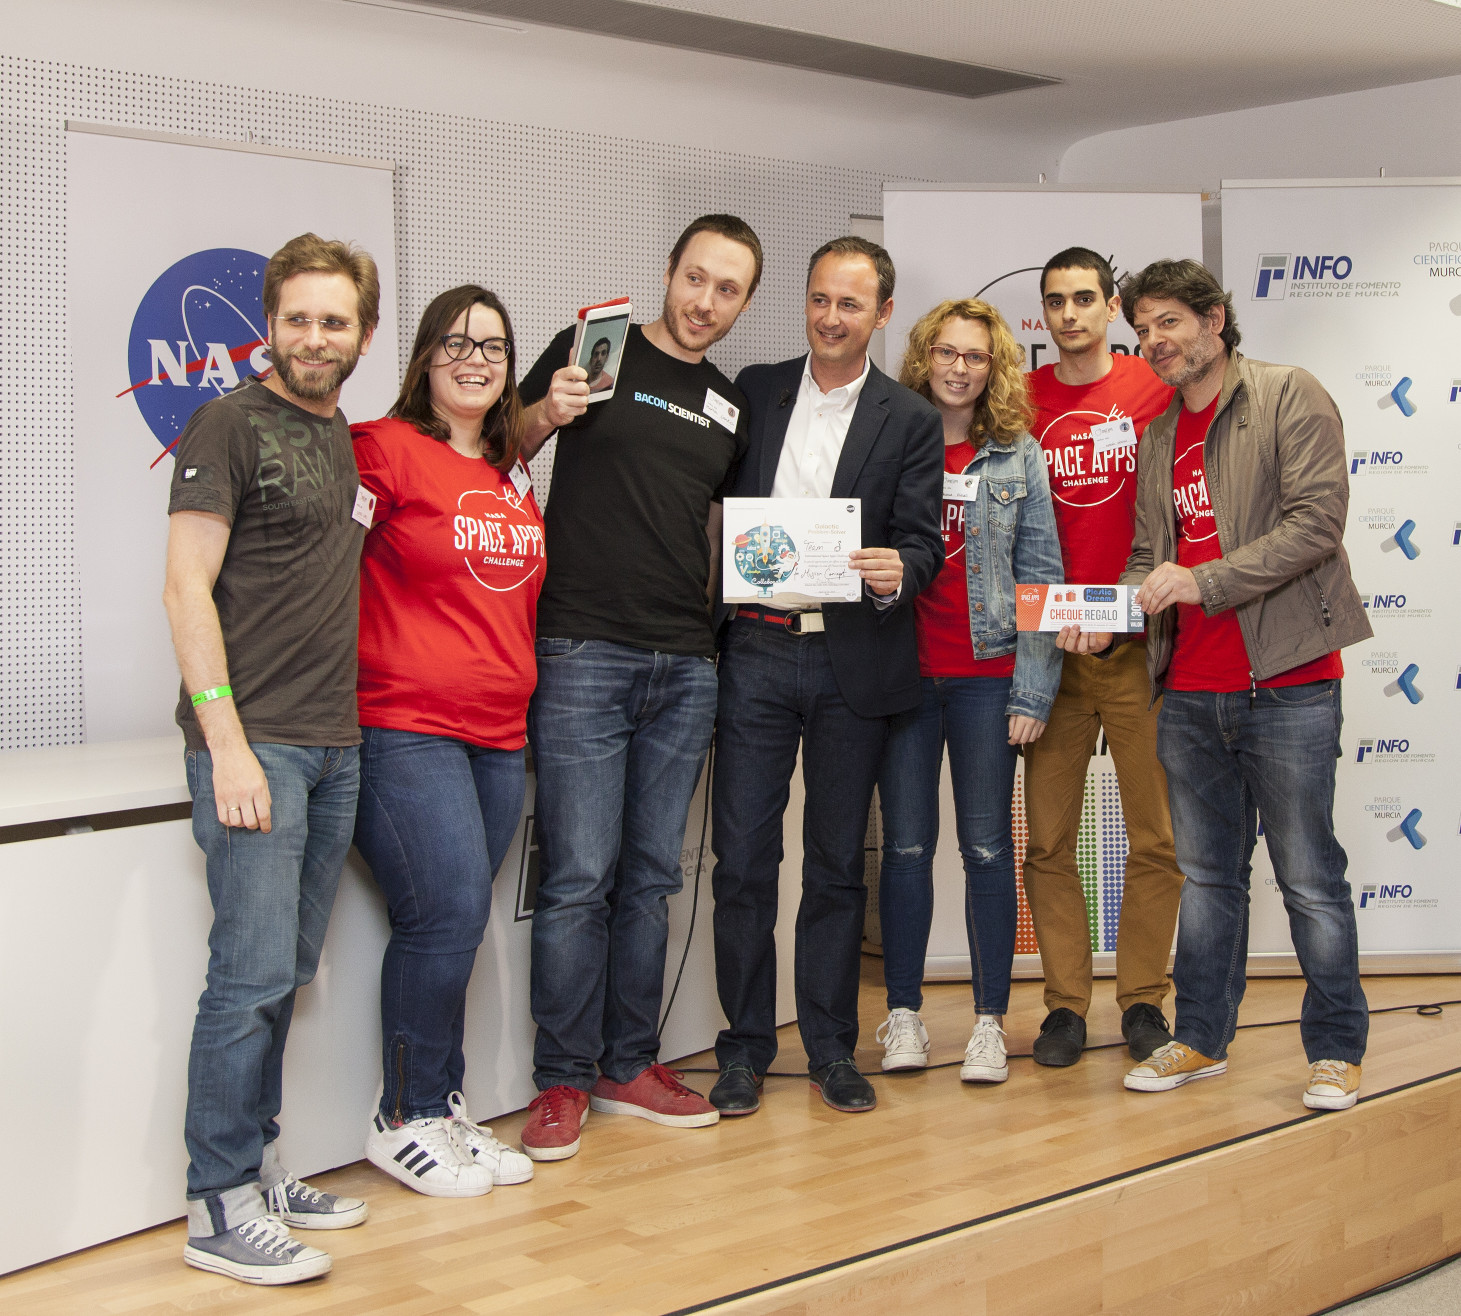 Space Apps Murcia 2016 - Equipo δ